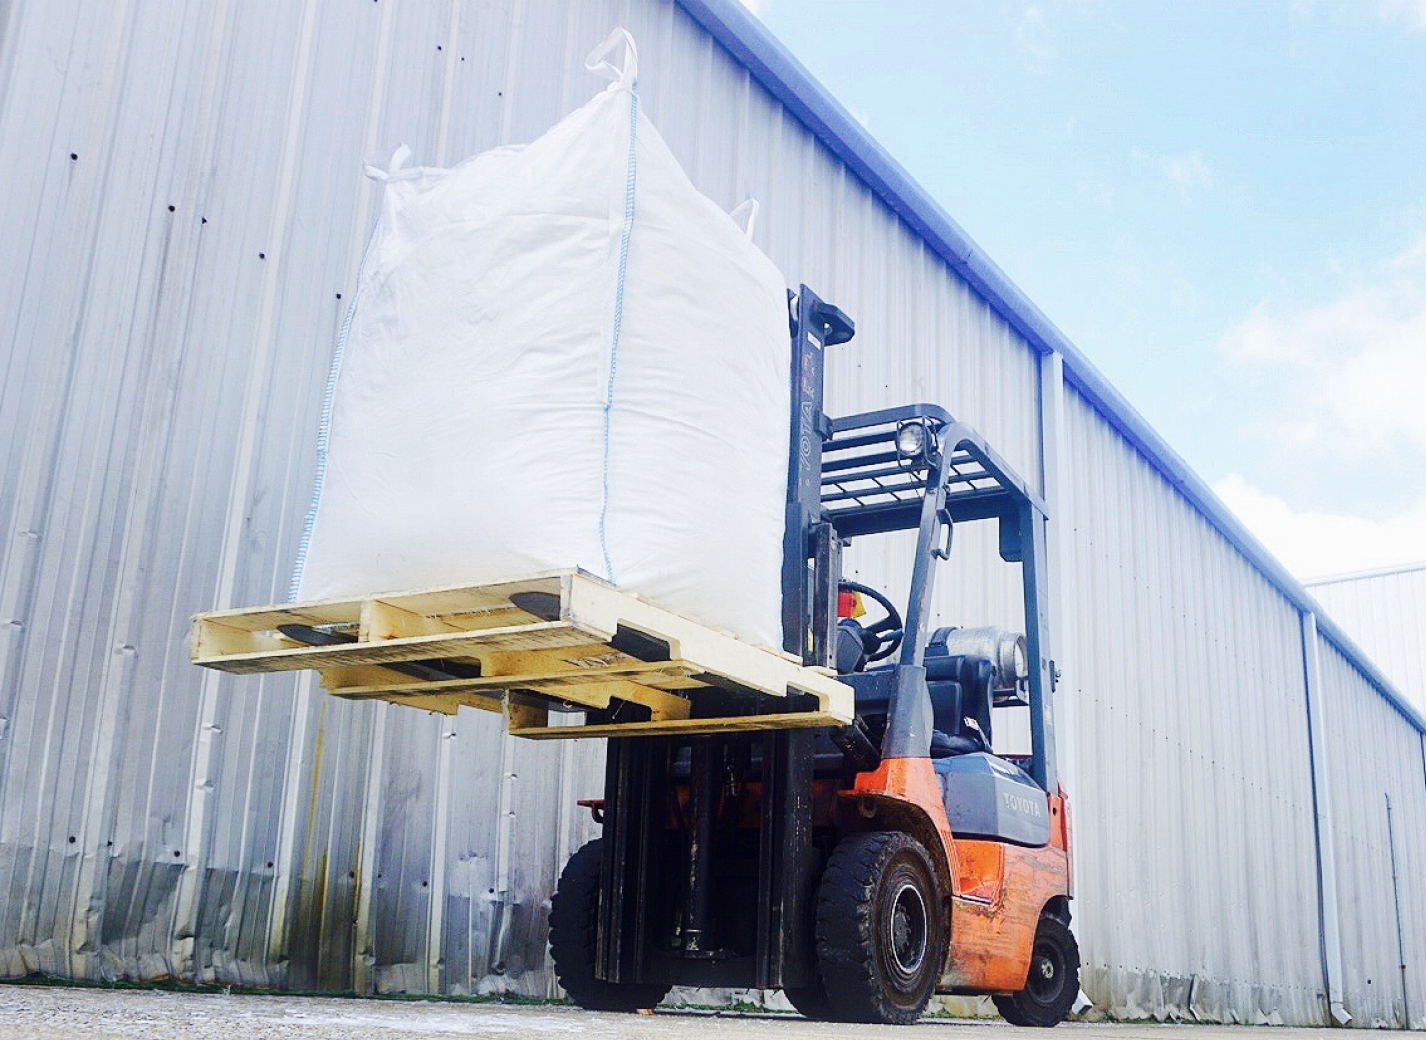 Lifting Bulk Bags by Forklift, Crane or Hoist